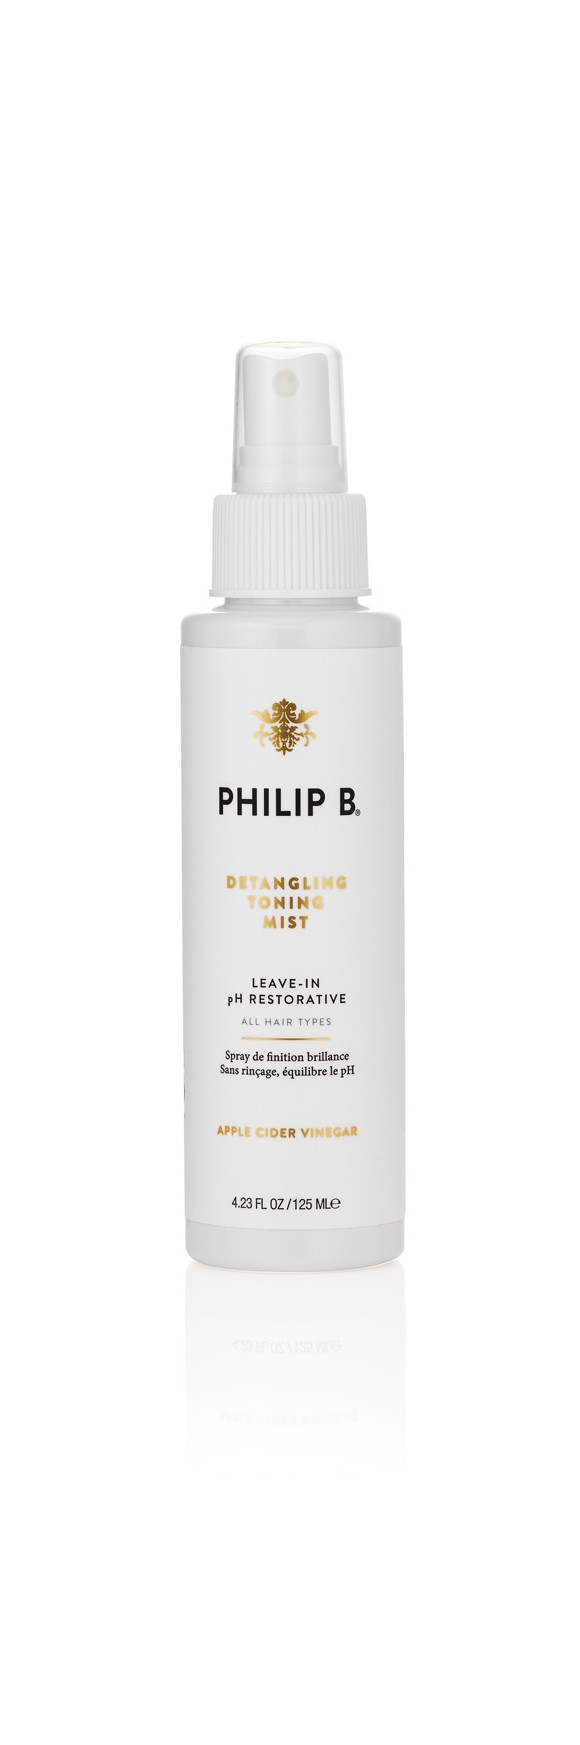 Philip B - pH Restorative Detangling Toning Leave-in Spray 125 ml